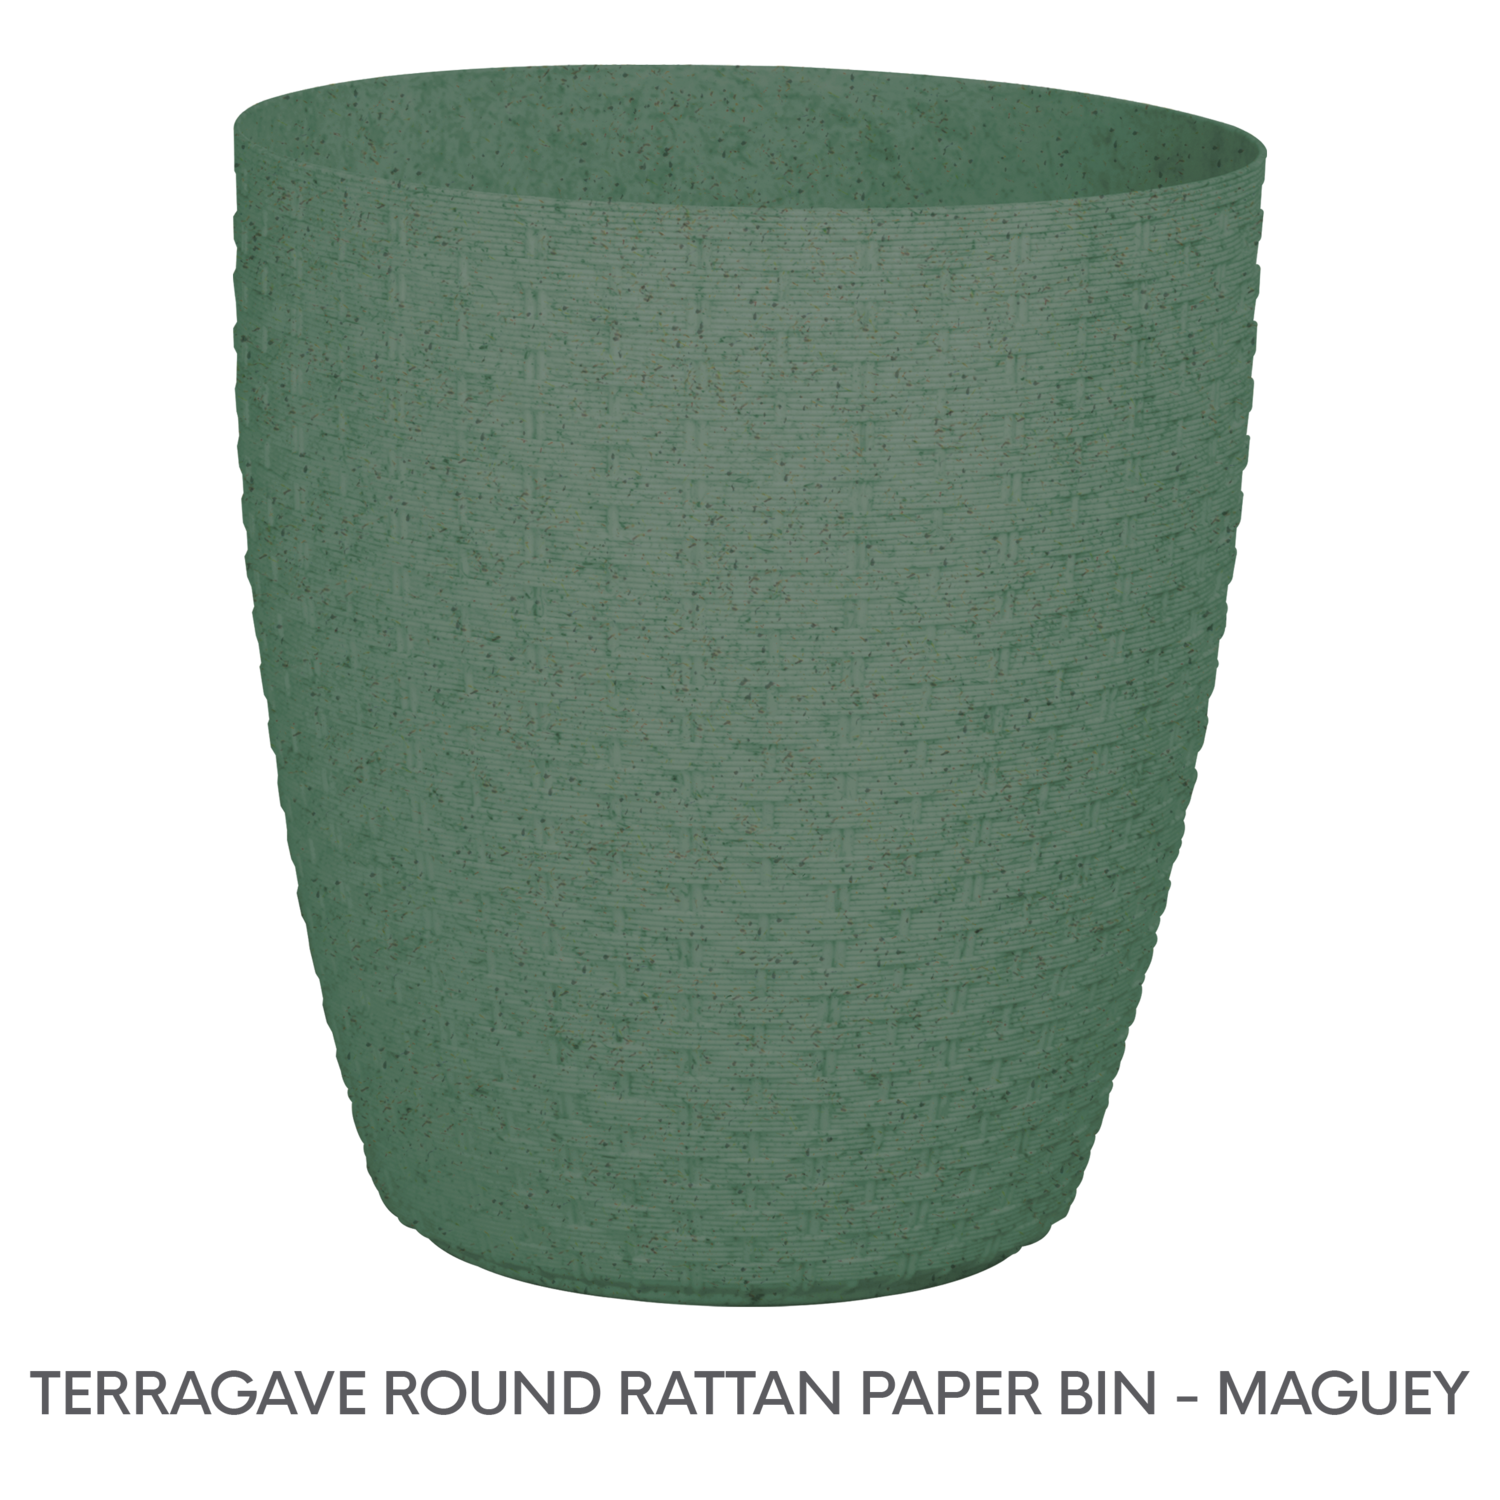 2 TERRAGAVE ROUND RATTAN PAPER BIN - MAGUEY.png